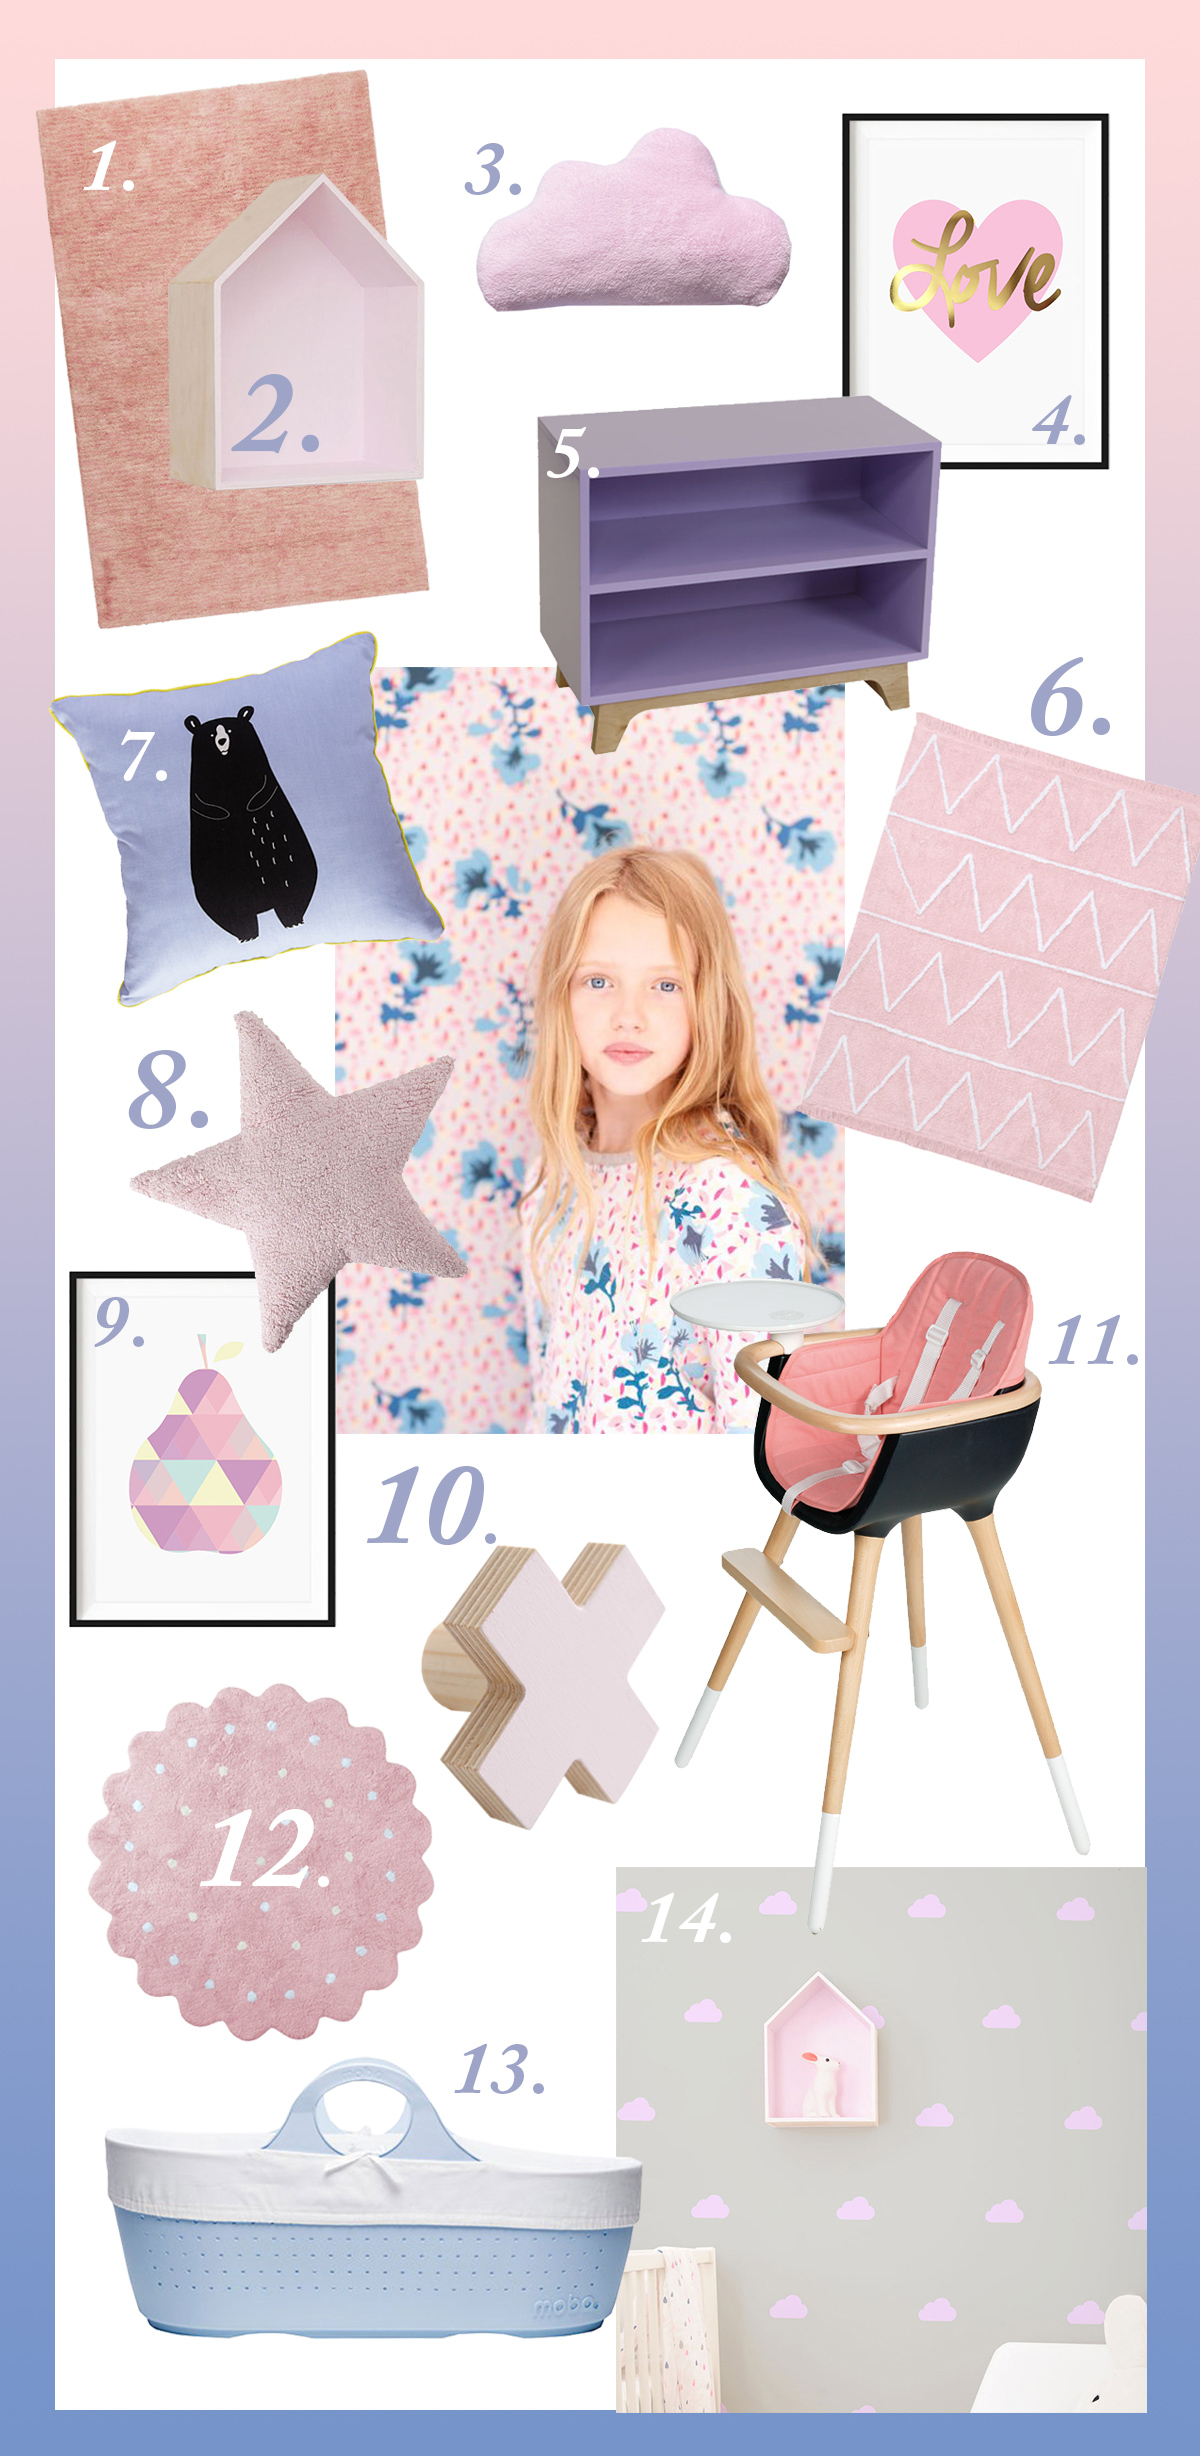 2016 Pantone colour of the year: Rose Quartz & Serenity This year we are embracing Pantone's colour philosophy and moving away from the stereotypical pink for girls and blue for boys.